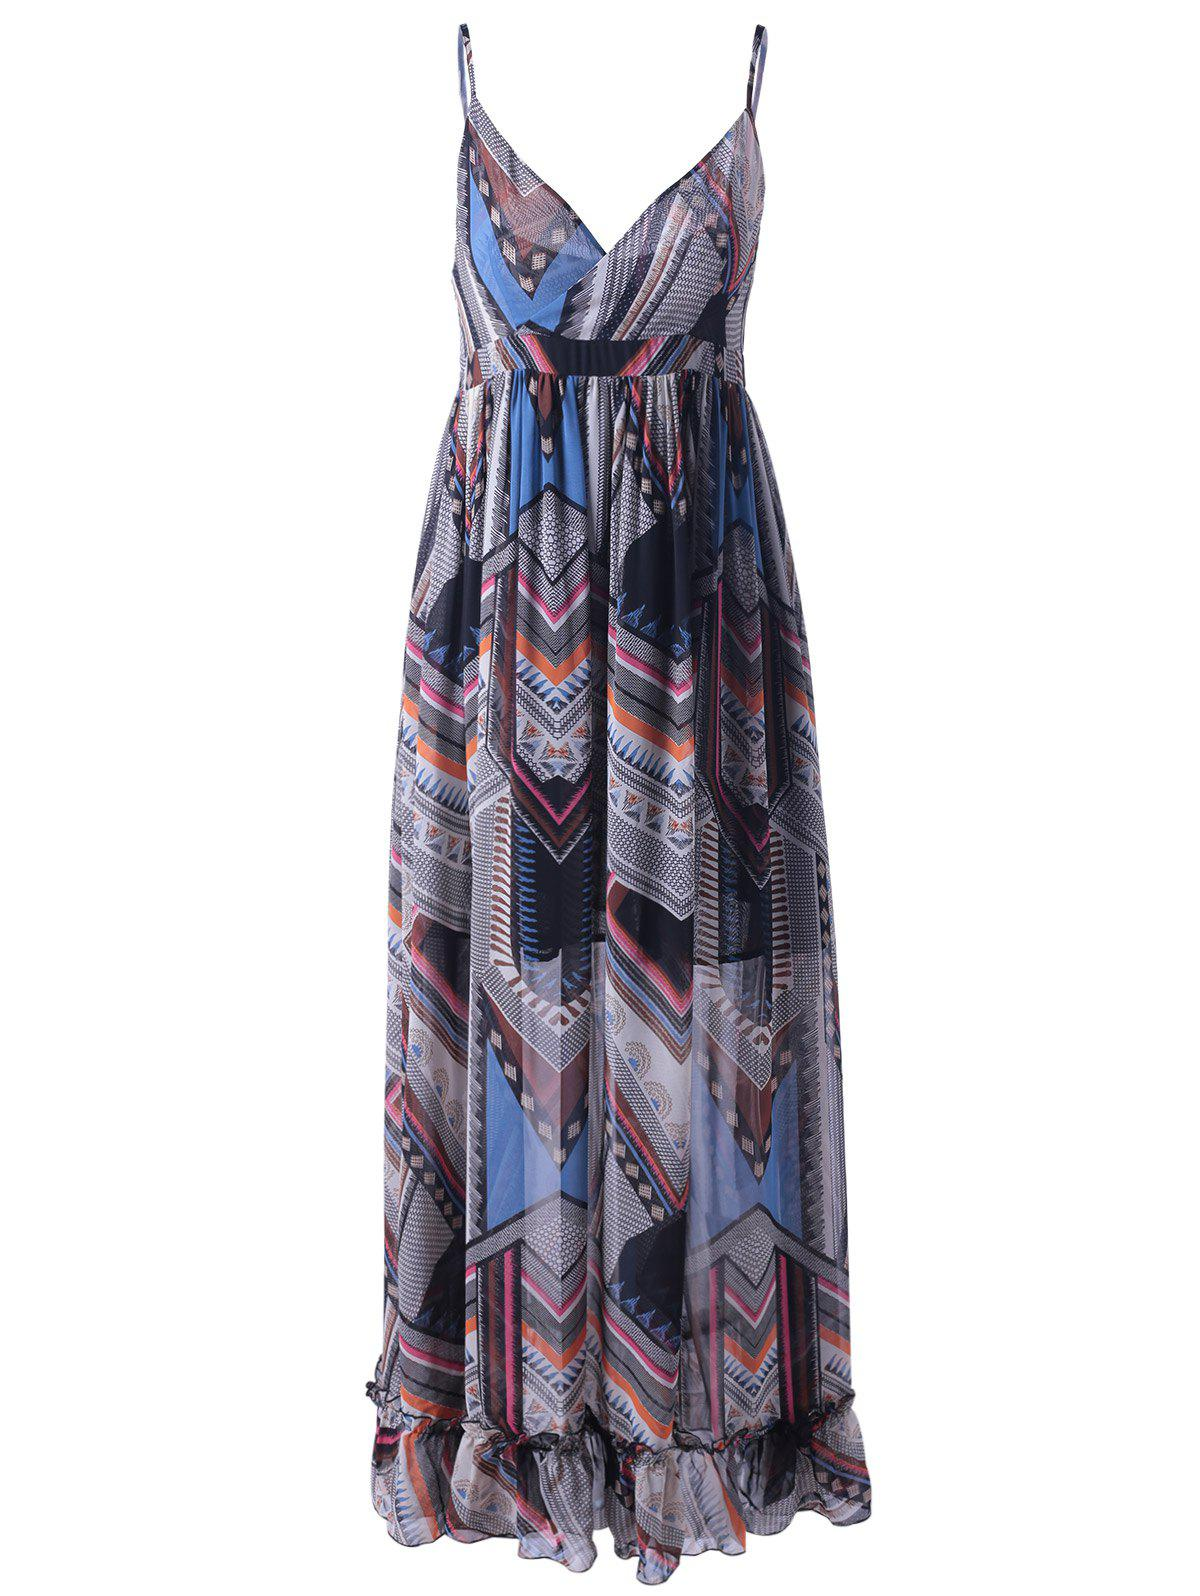 Bohemian Print Long Slip Beach Dress DRESSFO